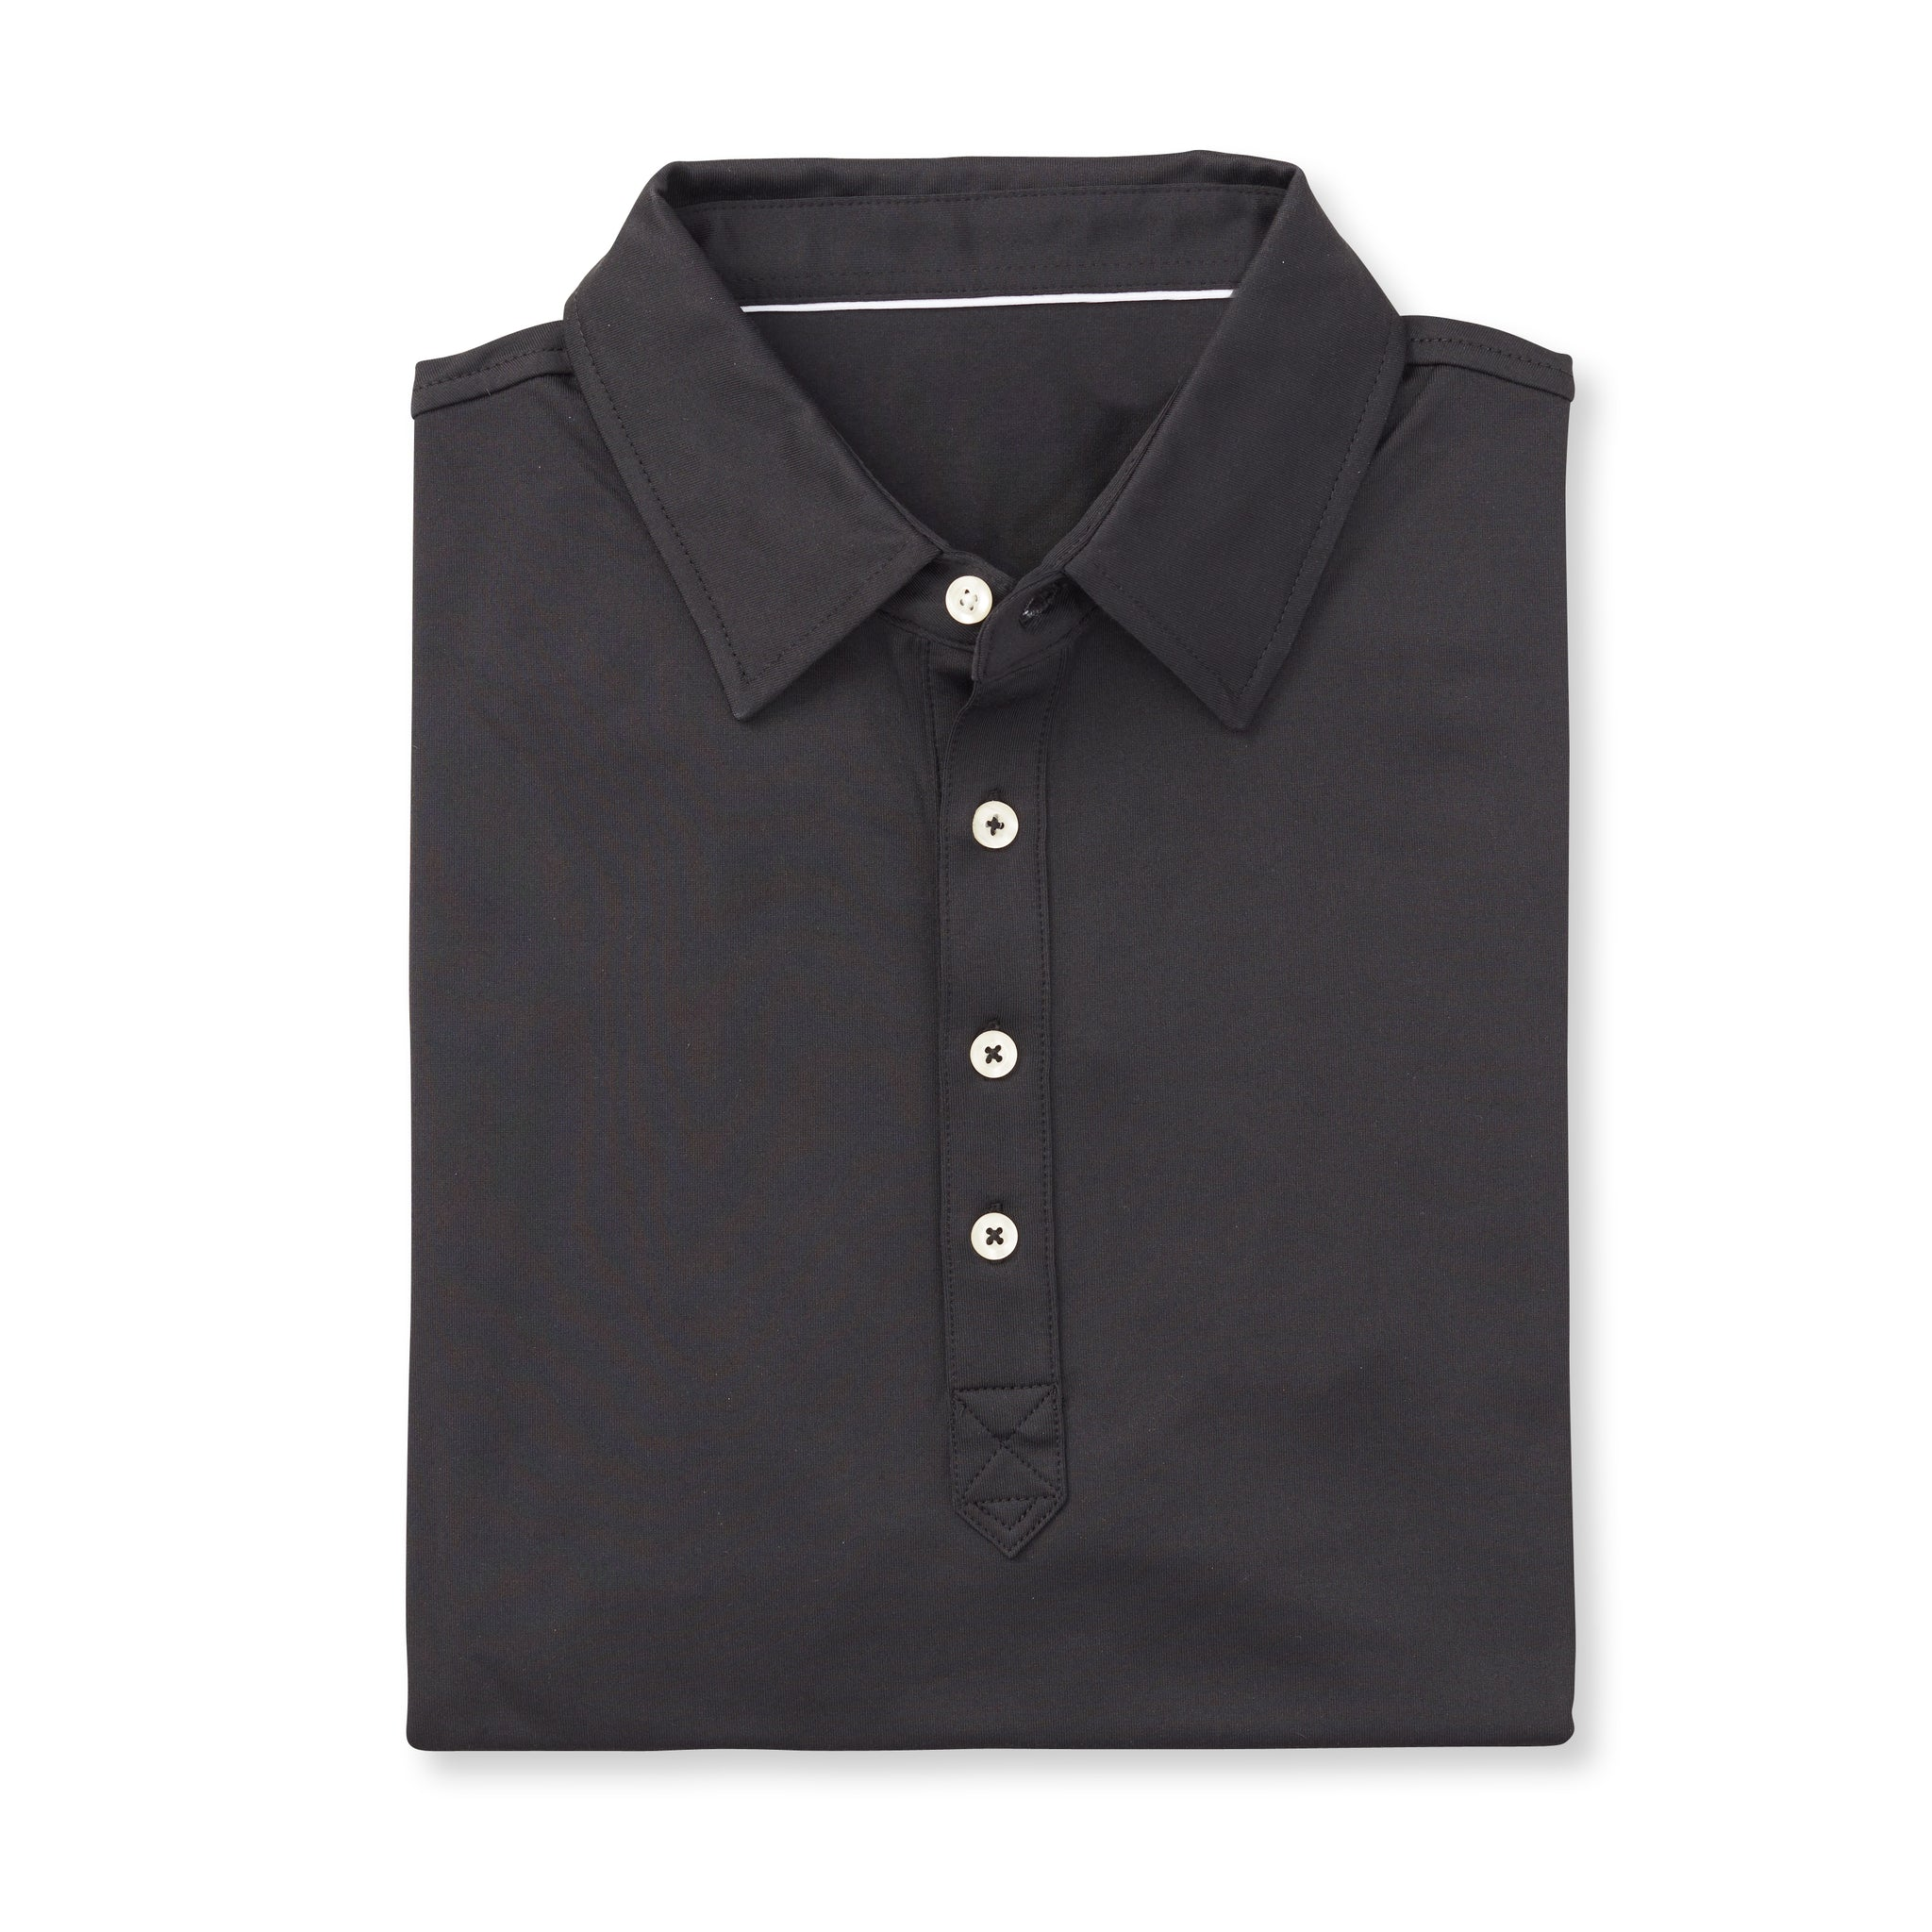 LUXTEC Champions Short Sleeve Polo - Black IS72400